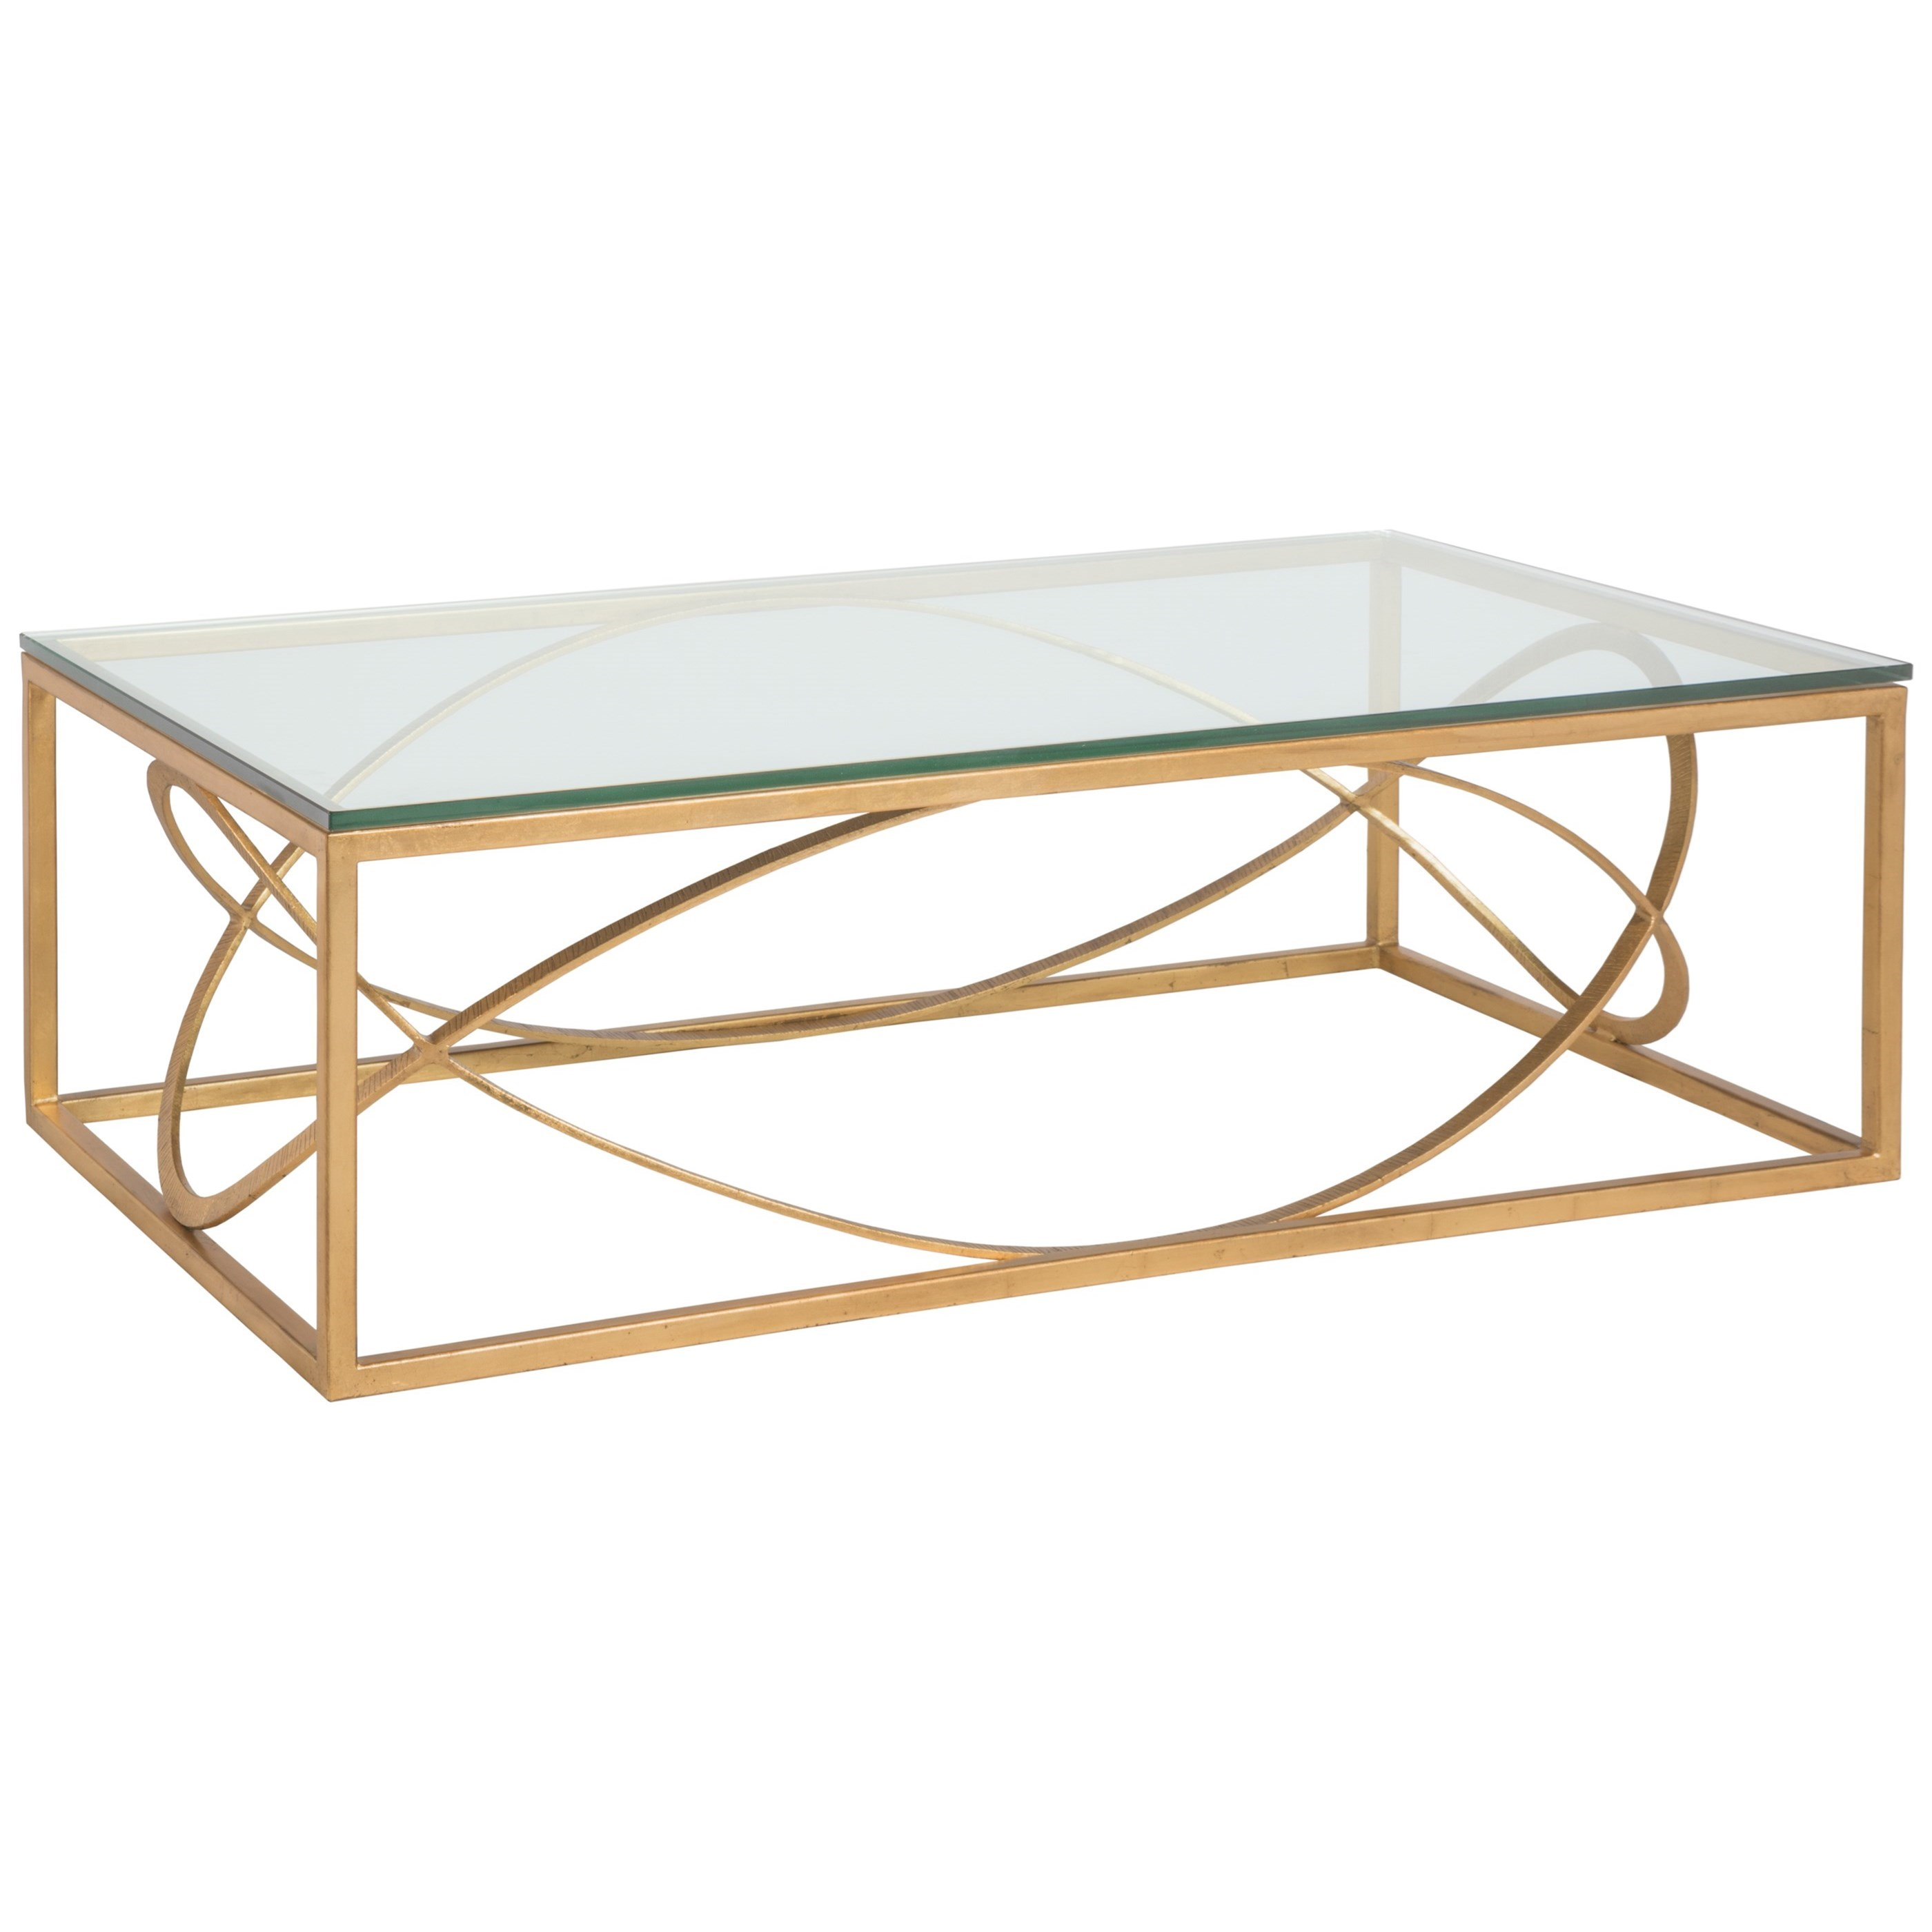 Metal Designs Ellipse Rectangular Cocktail Table by Artistica at Alison Craig Home Furnishings